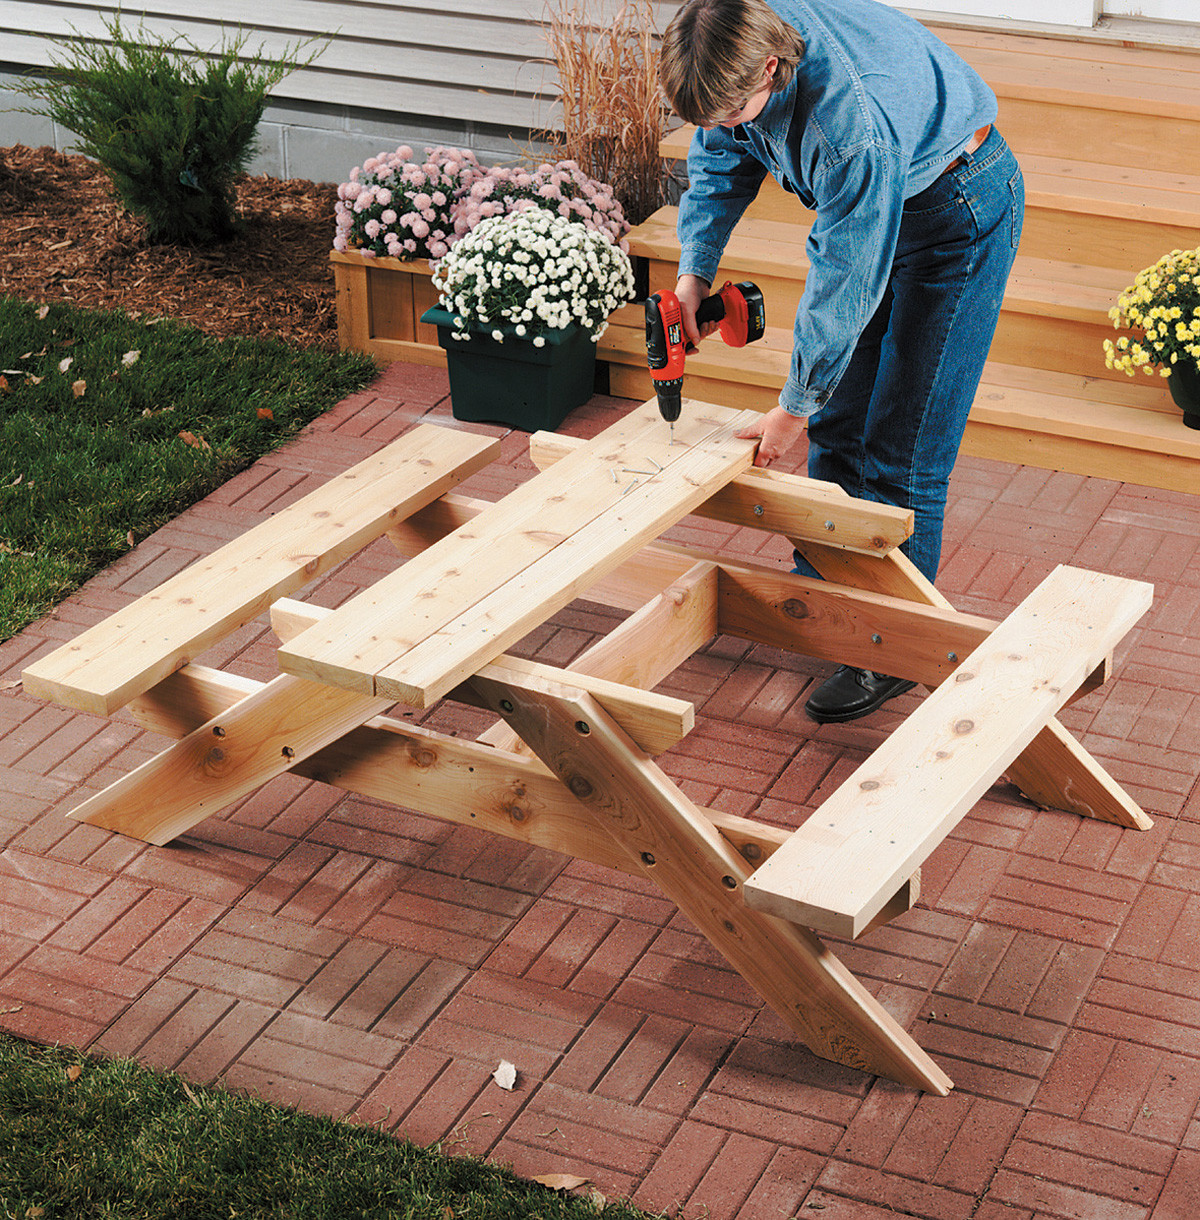 Best ideas about DIY Kids Picnic Table . Save or Pin DIY Kids Picnic Table Now.